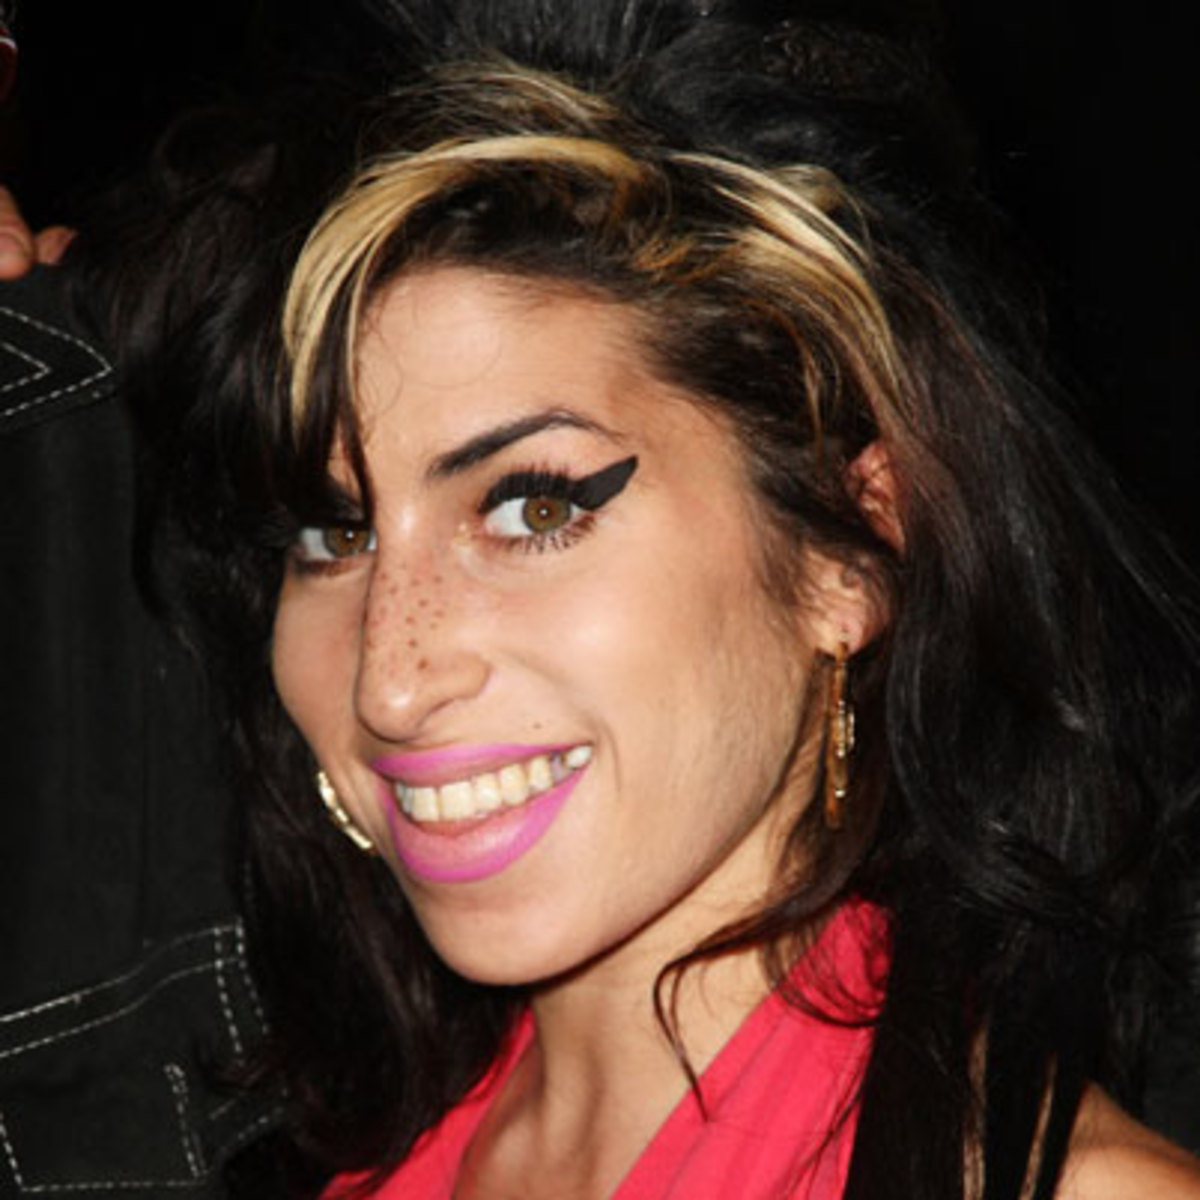 Amy Winehouse - Songwriter, Singer - Biography.com Amy Winehouse